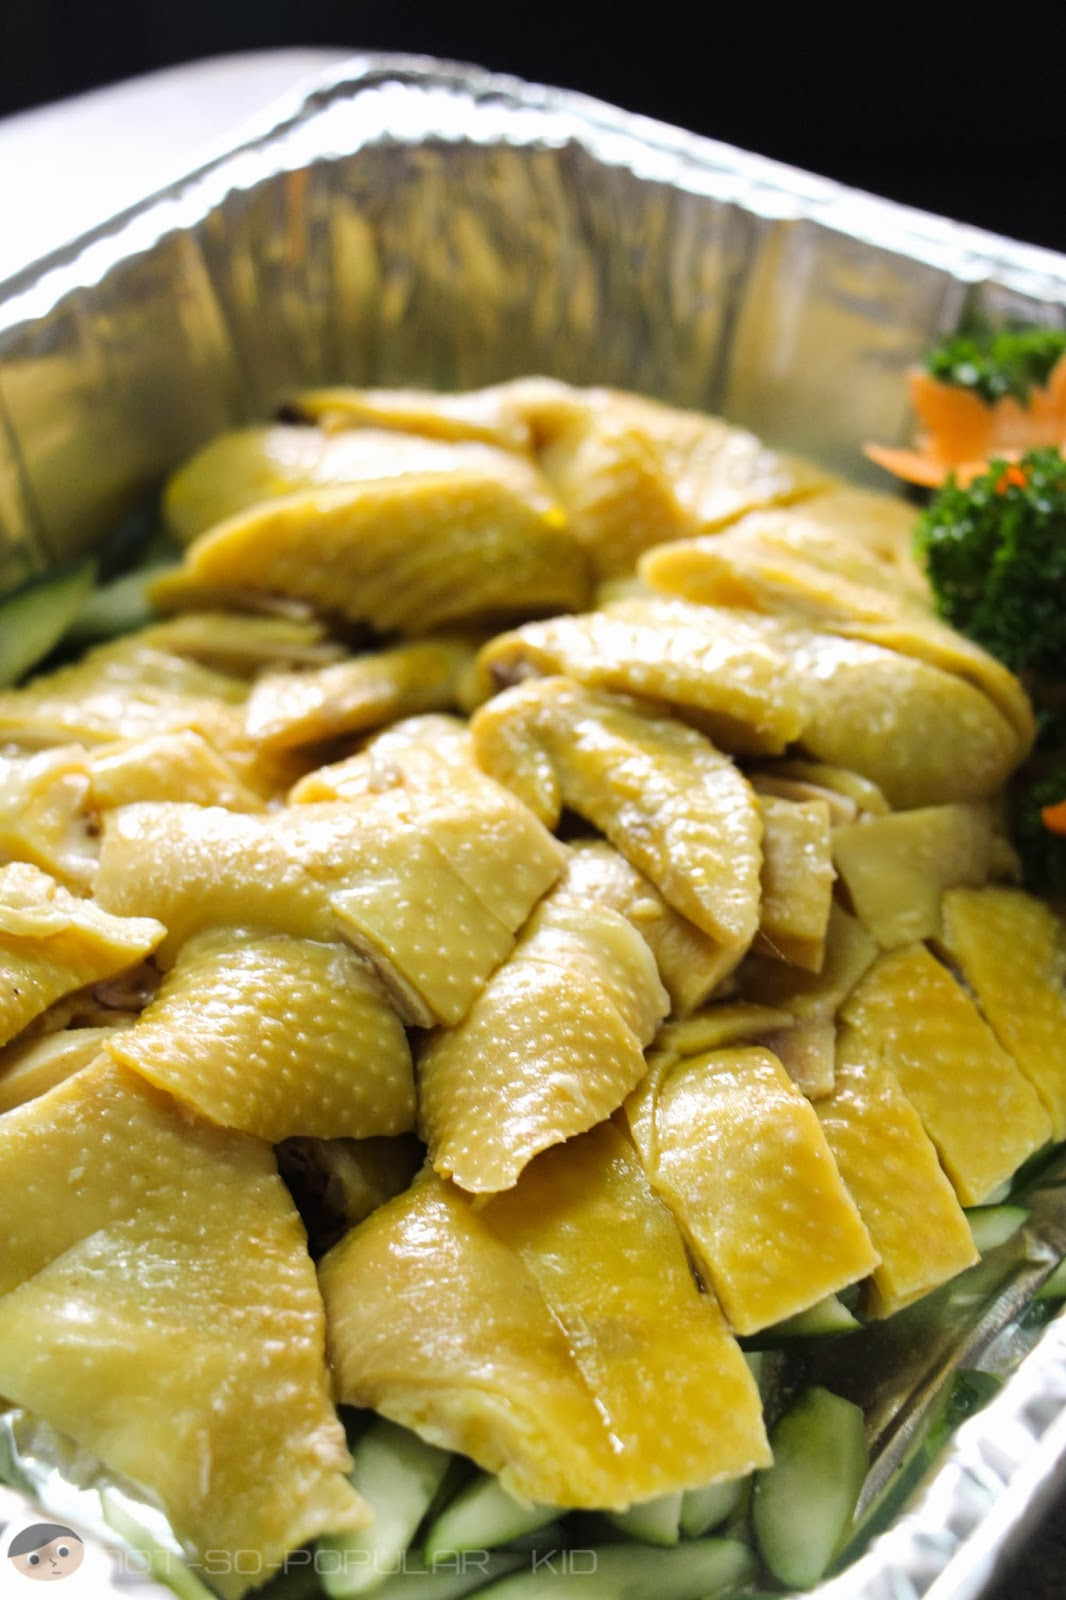 A closer look - Hainanese Chicken of Wee Nam Kee